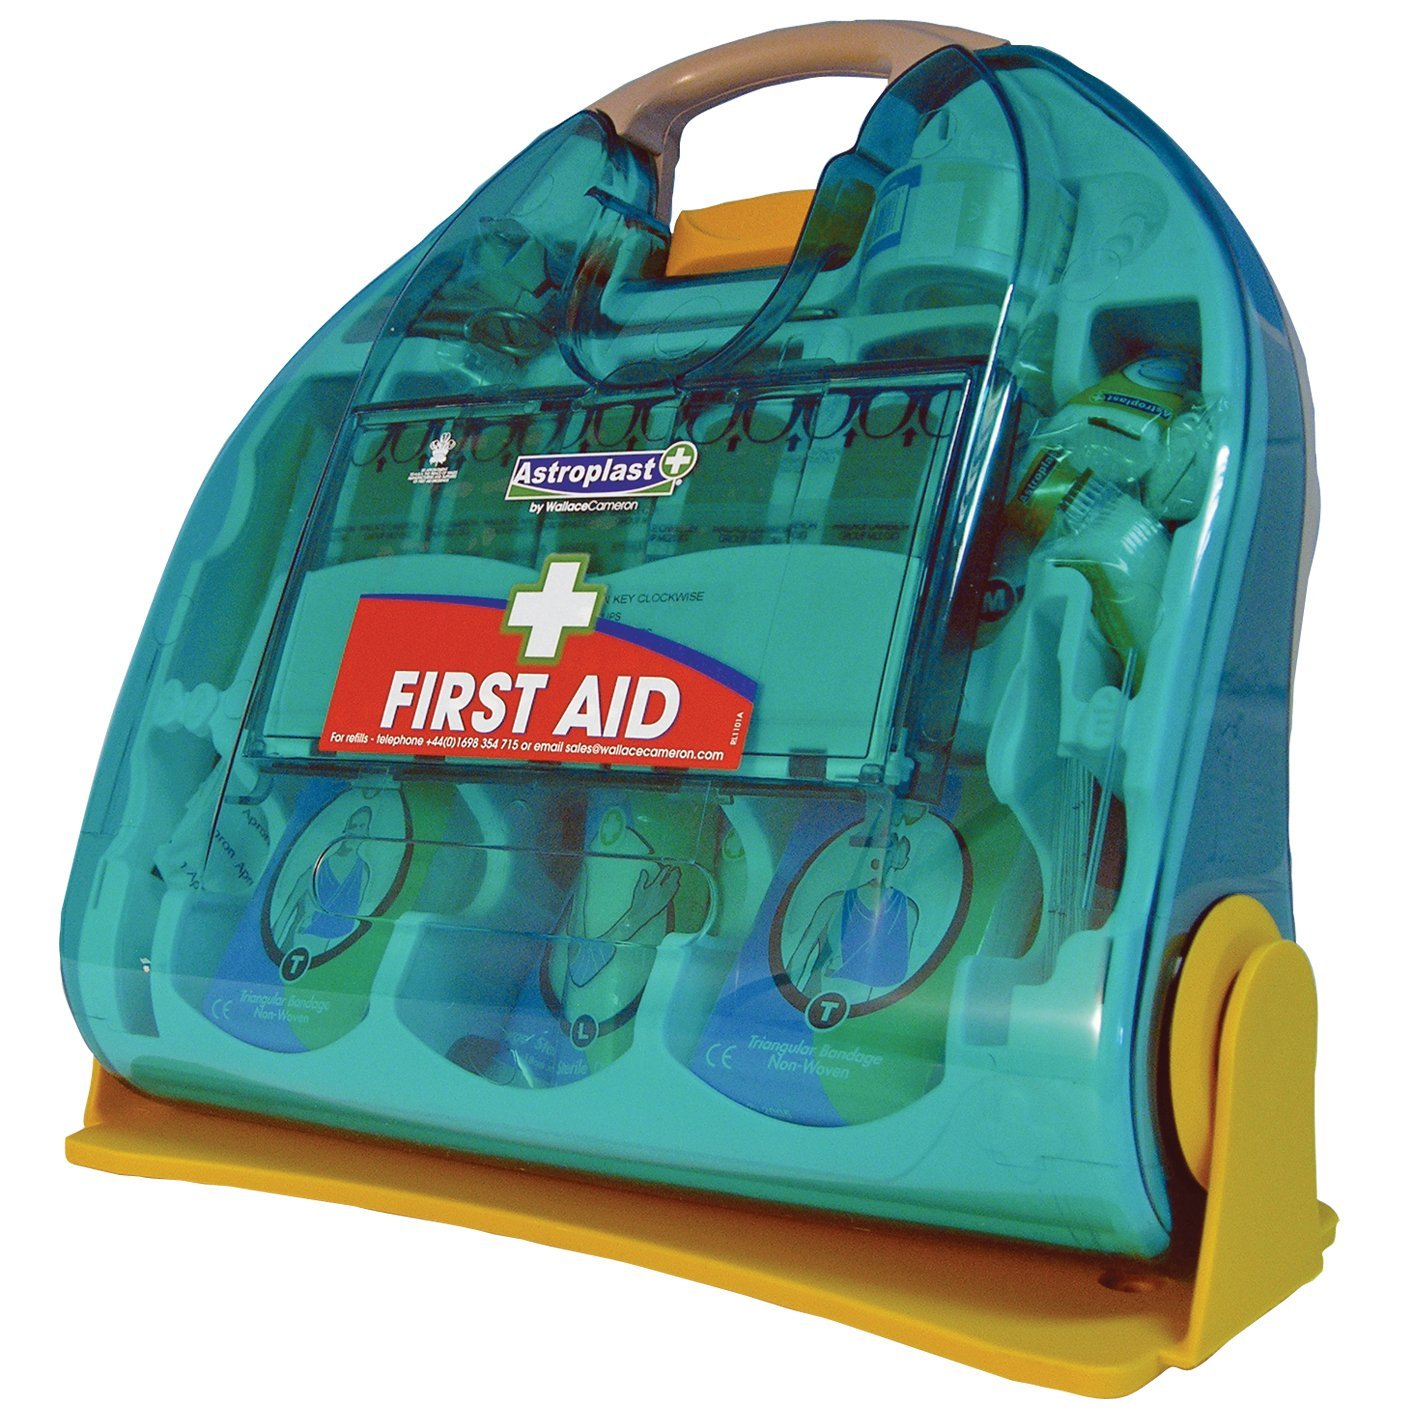 Astroplast Adulto HSE 50 person First Aid Kit Ocean Green